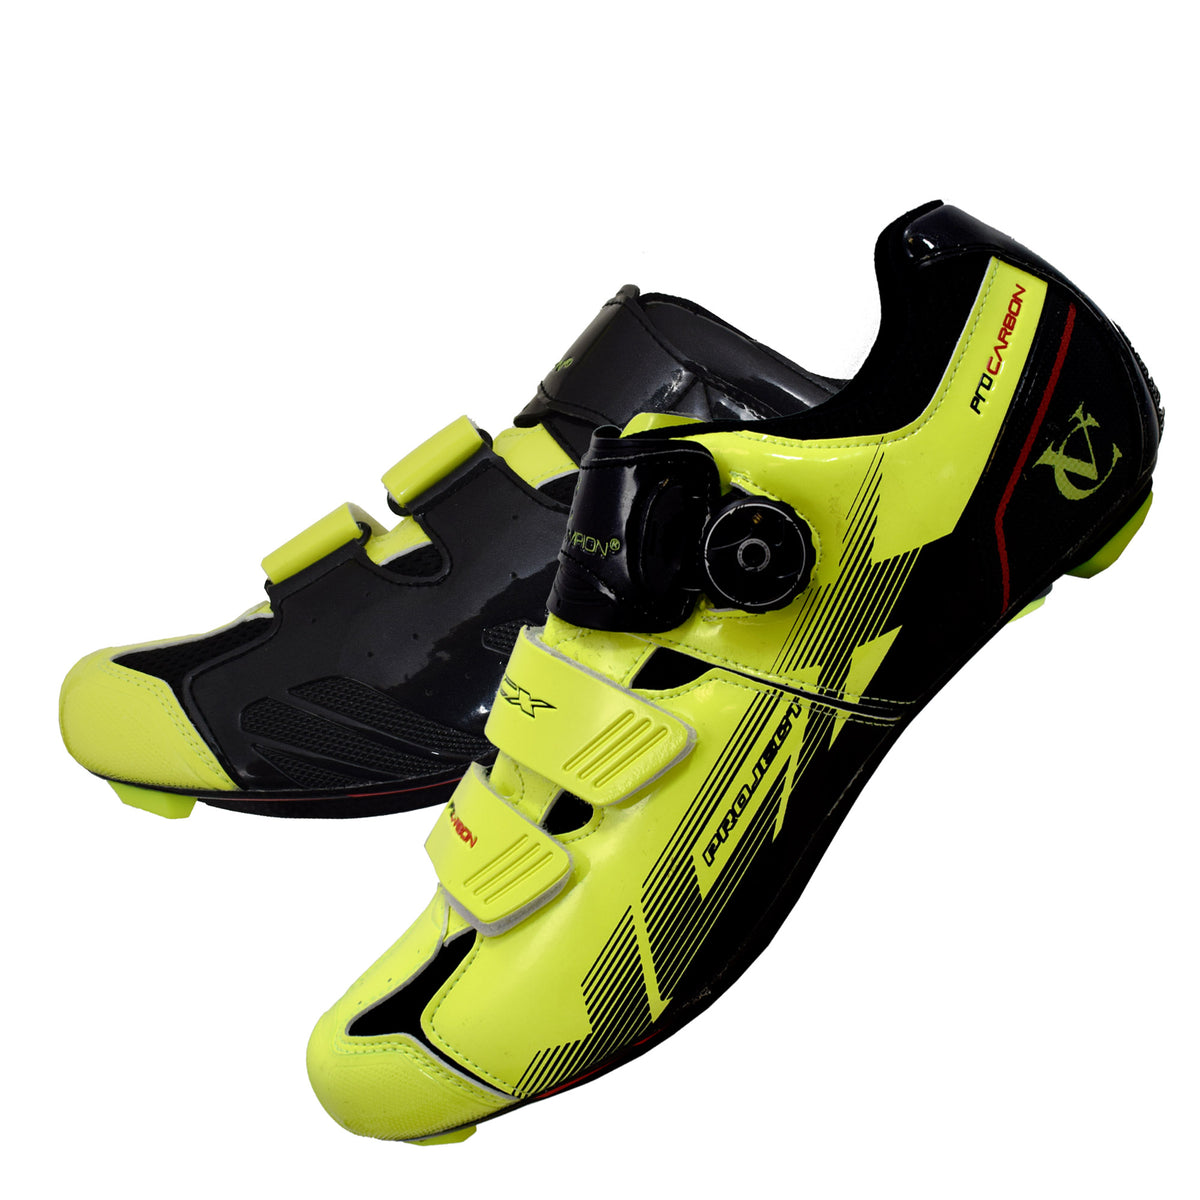 VCX Cycling Shoes (pair) with Carbon Fibre Soles - 2 colours available